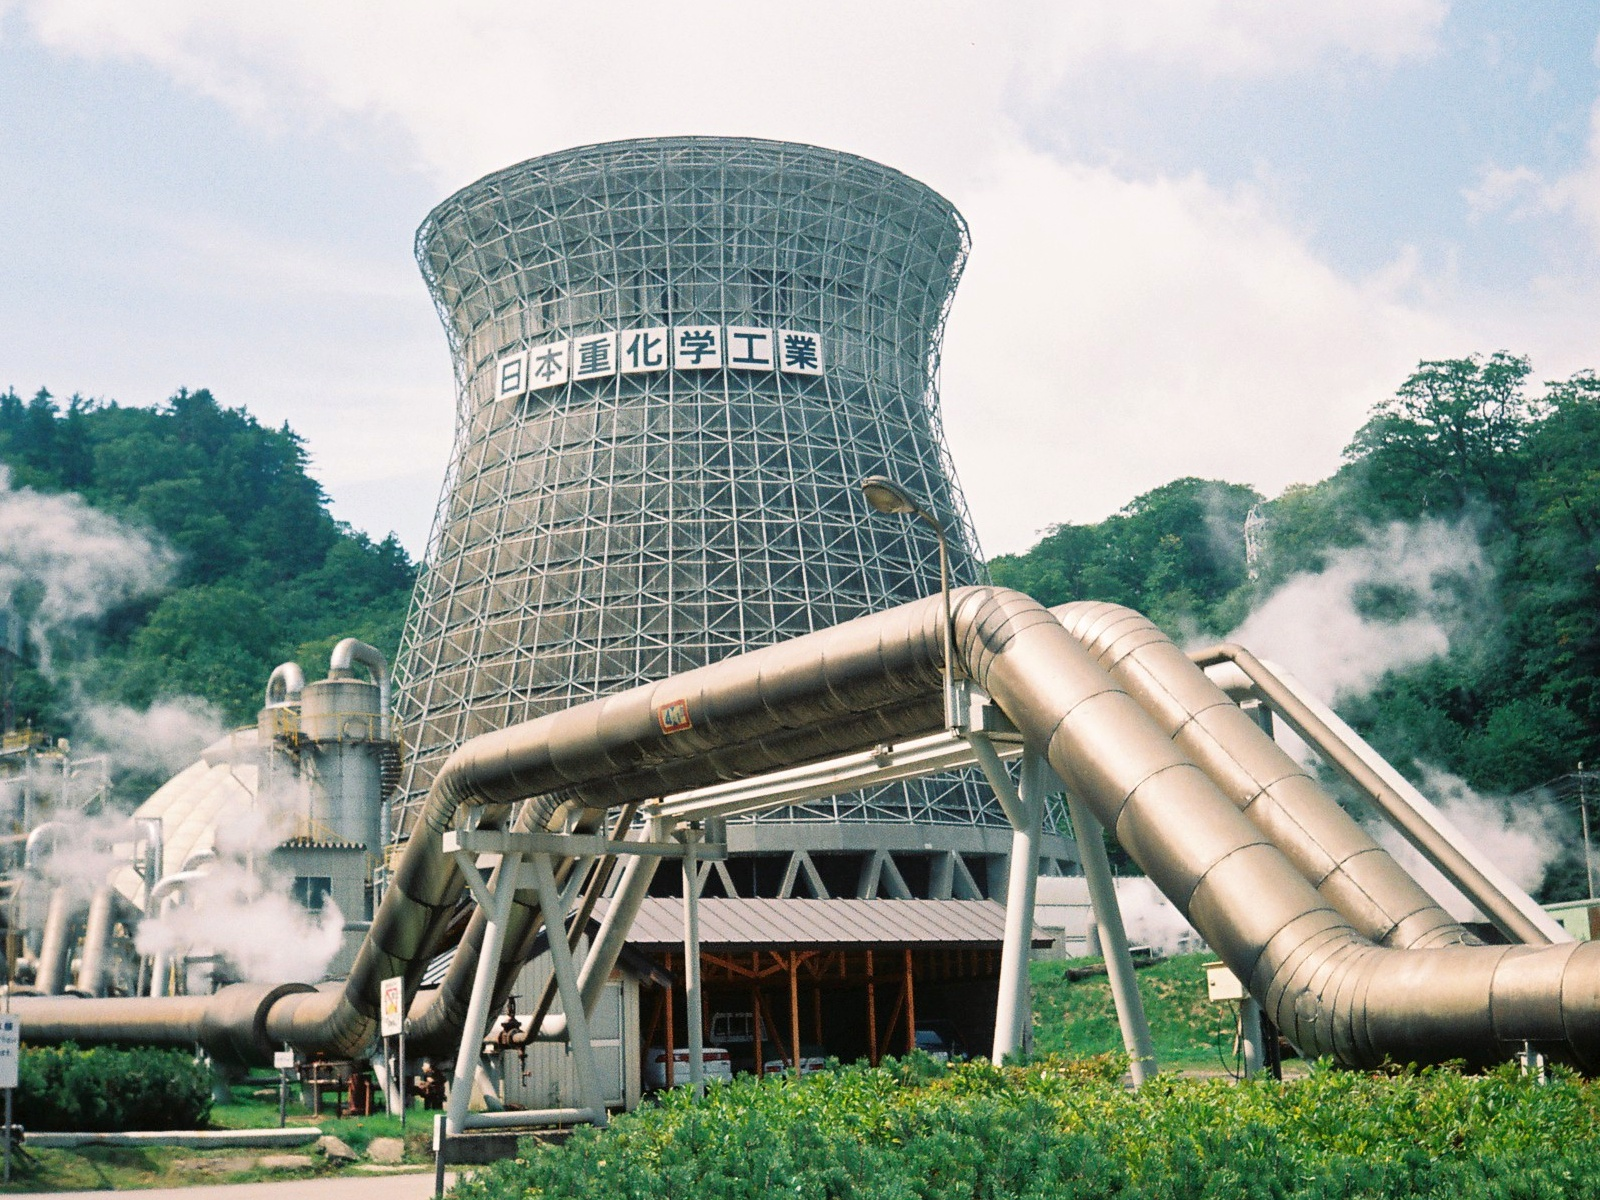 Japan's geothermal resources could help to replace nuclear capacity